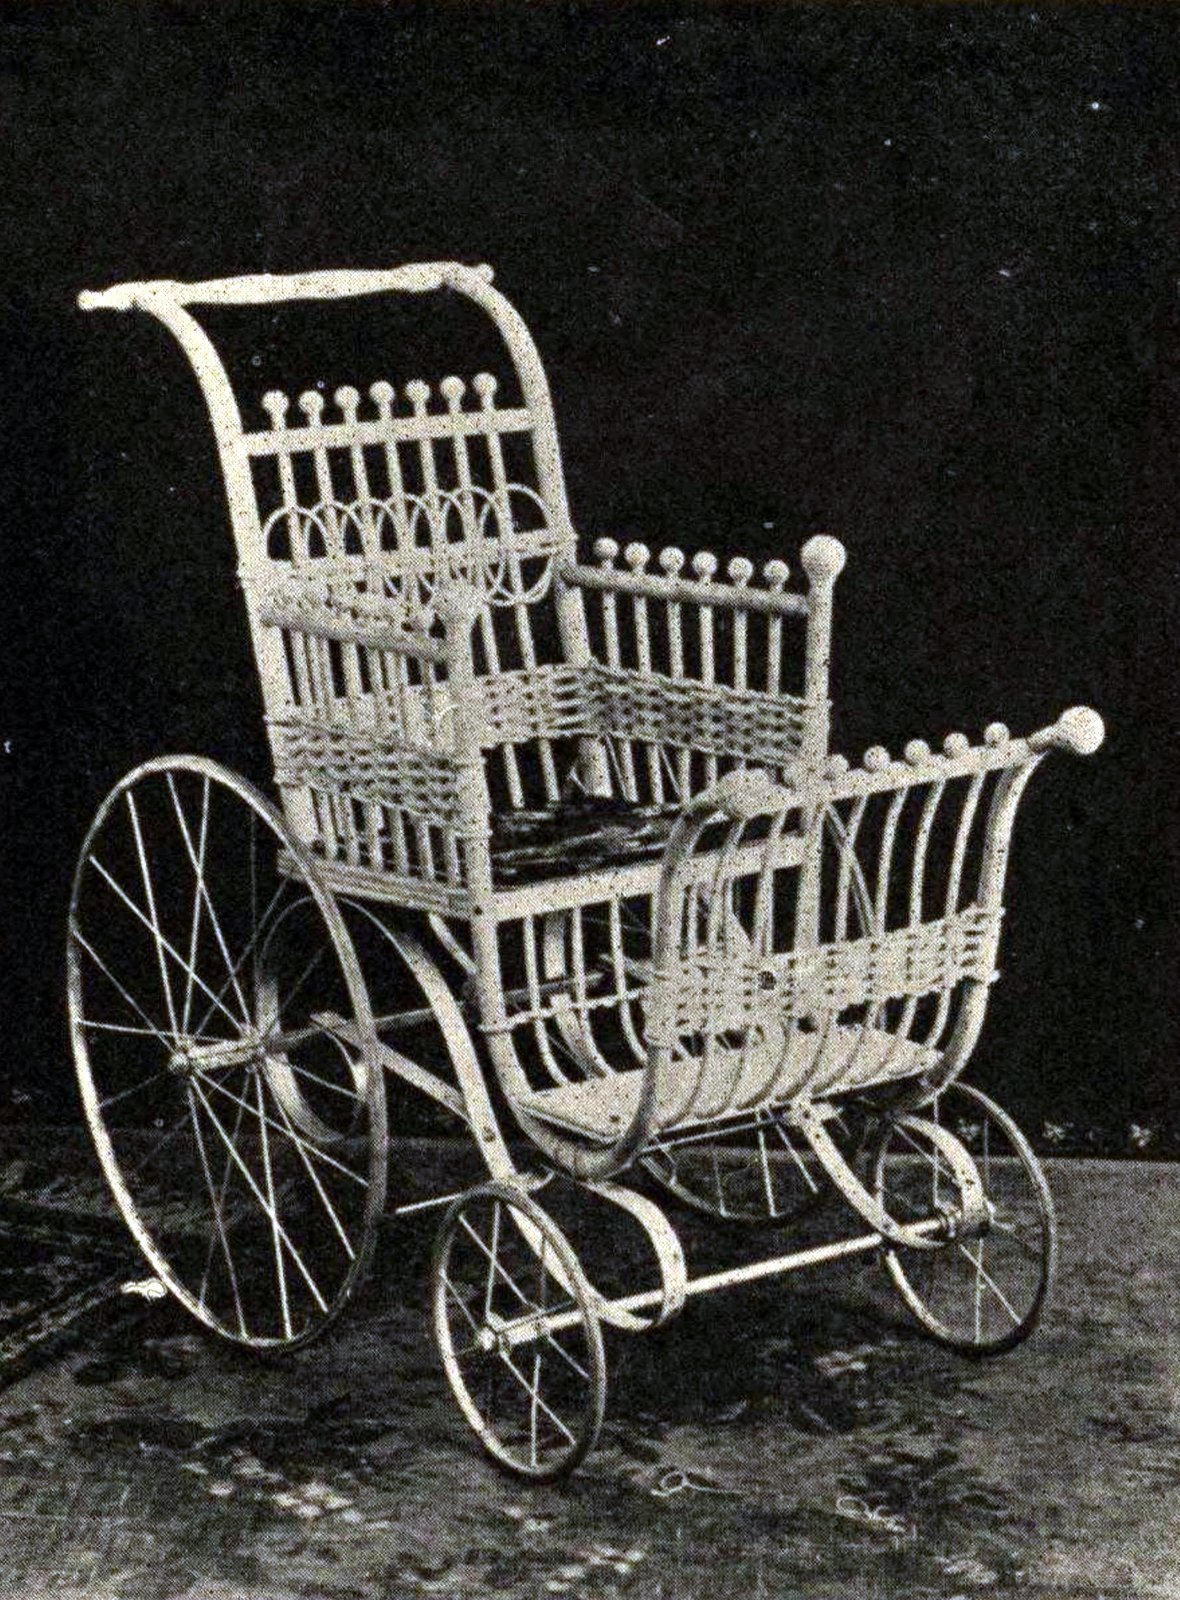 Antique wicker baby stroller from 1900